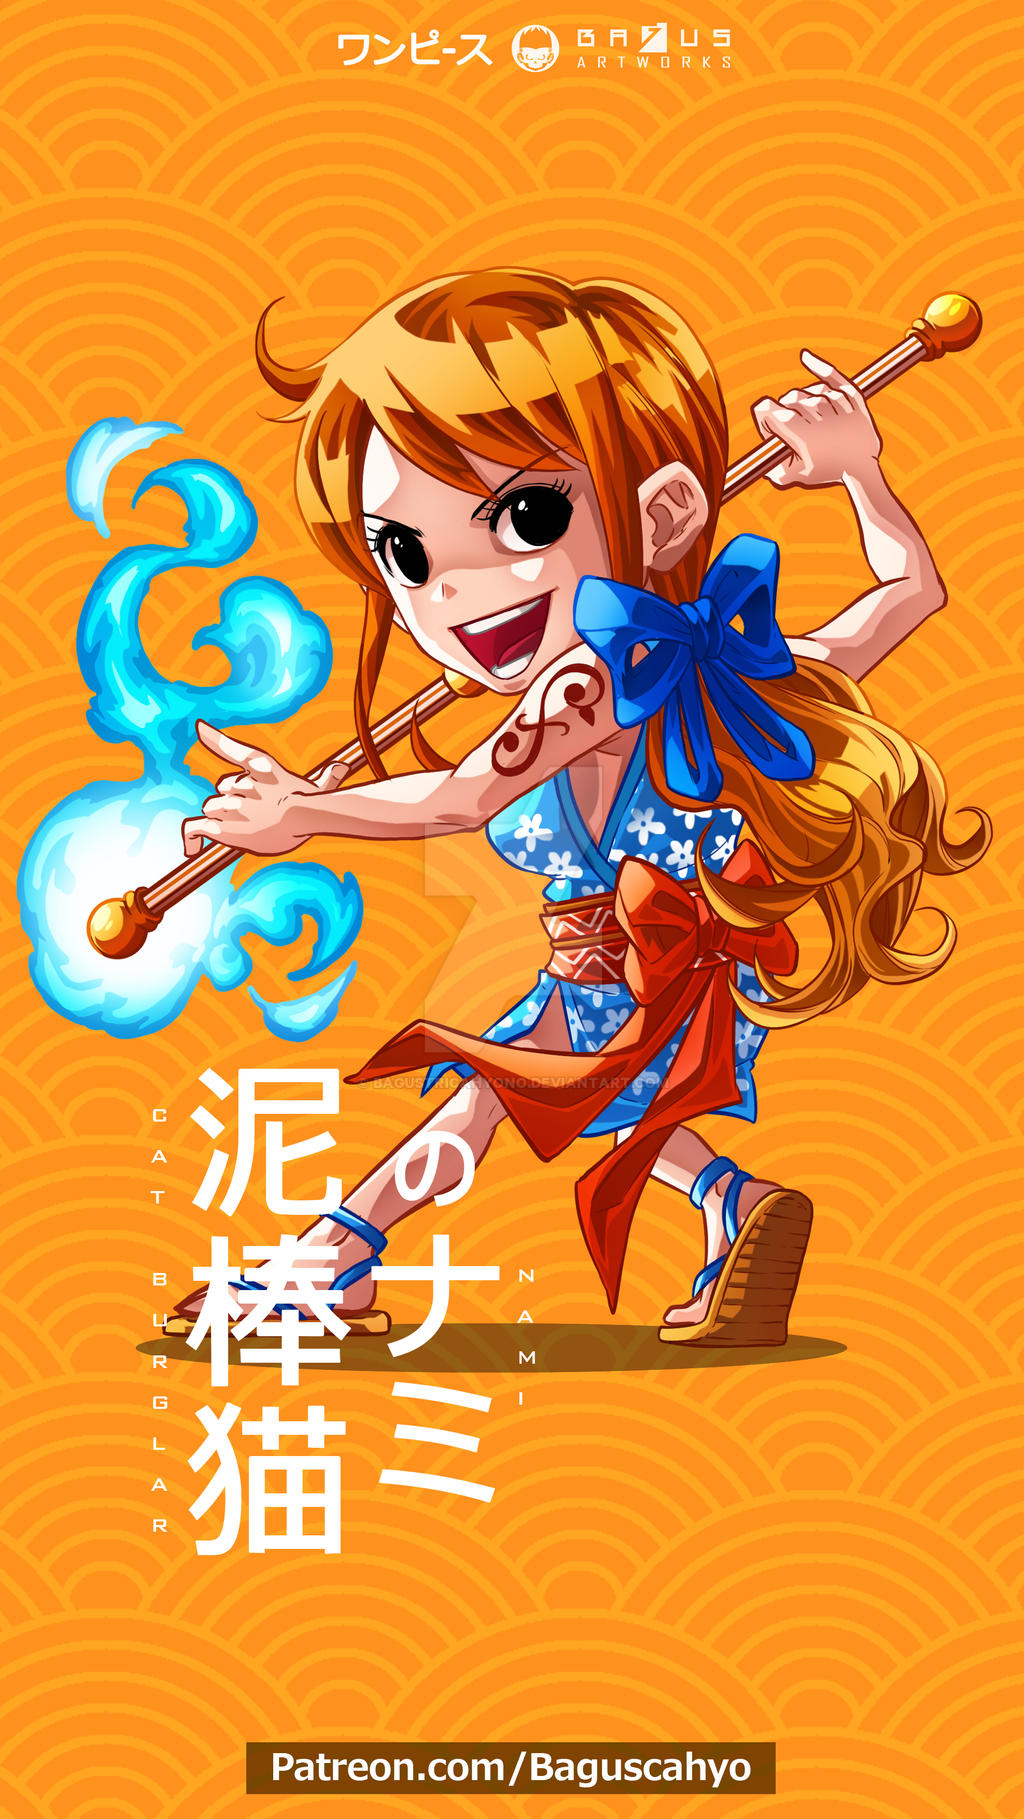 Nami One Piece Wallpaper For Phone By Bagustricahyono On Deviantart